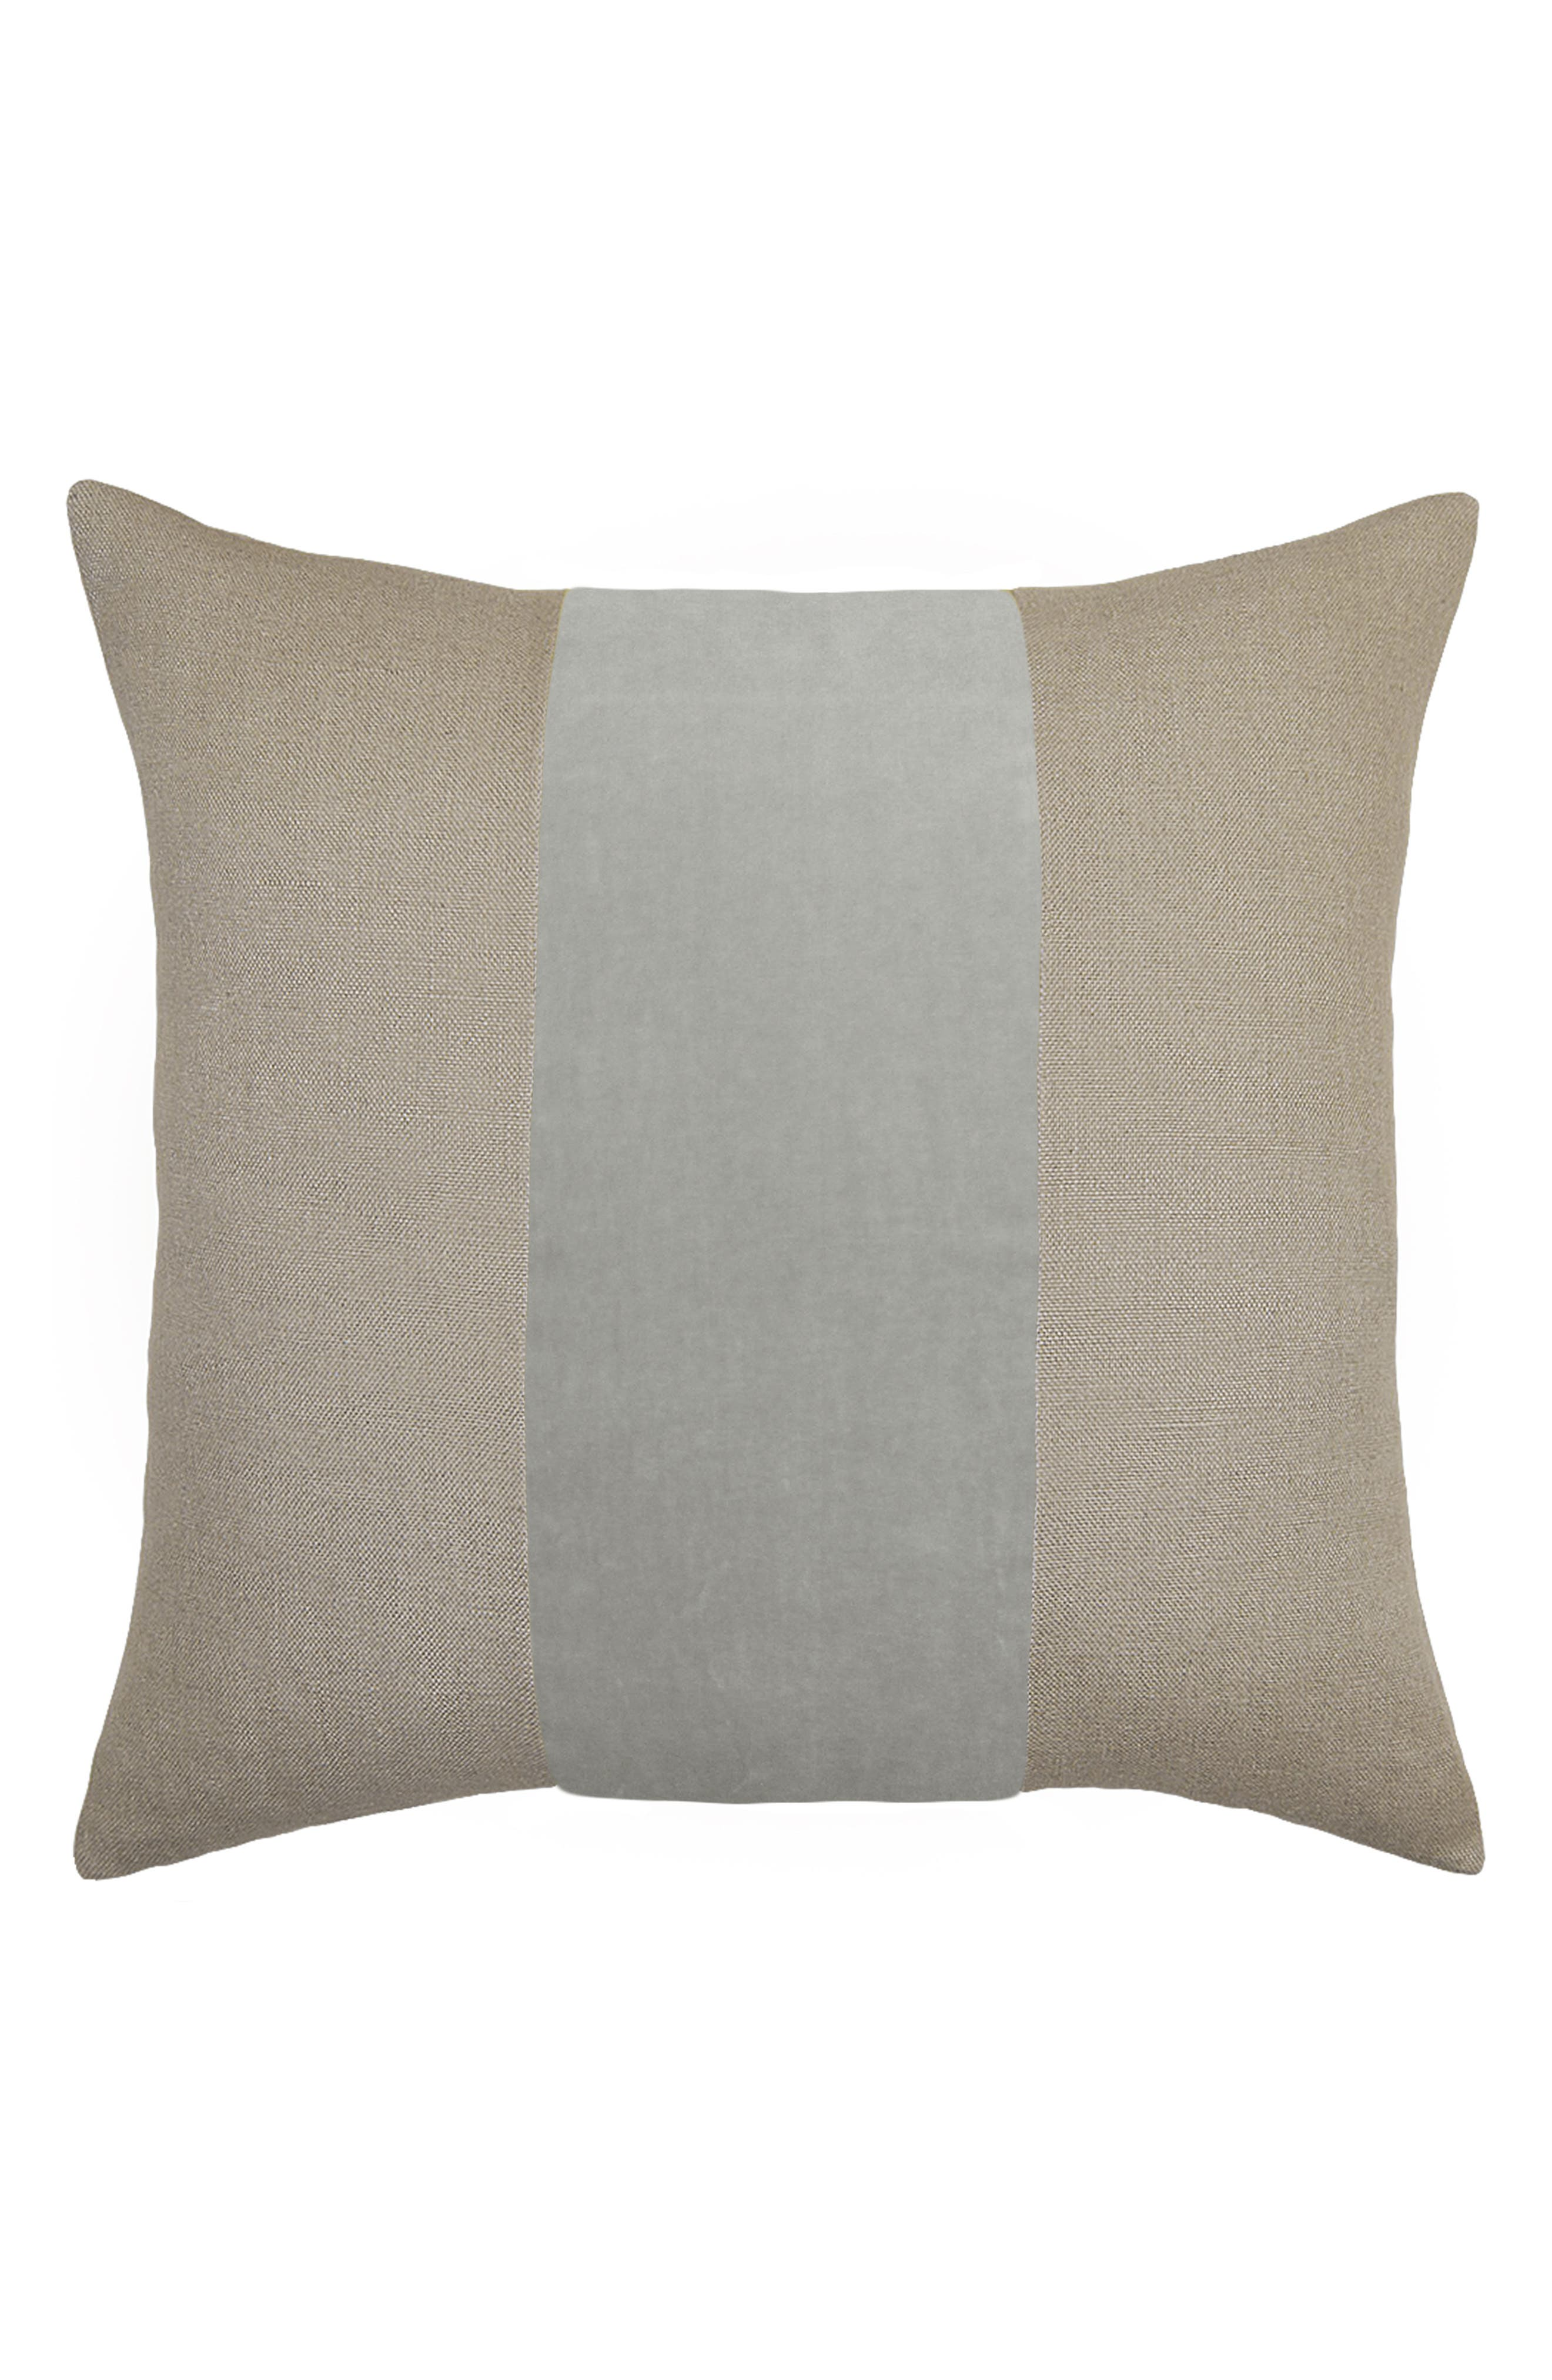 Square Feathers Ming Birch Accent Pillow